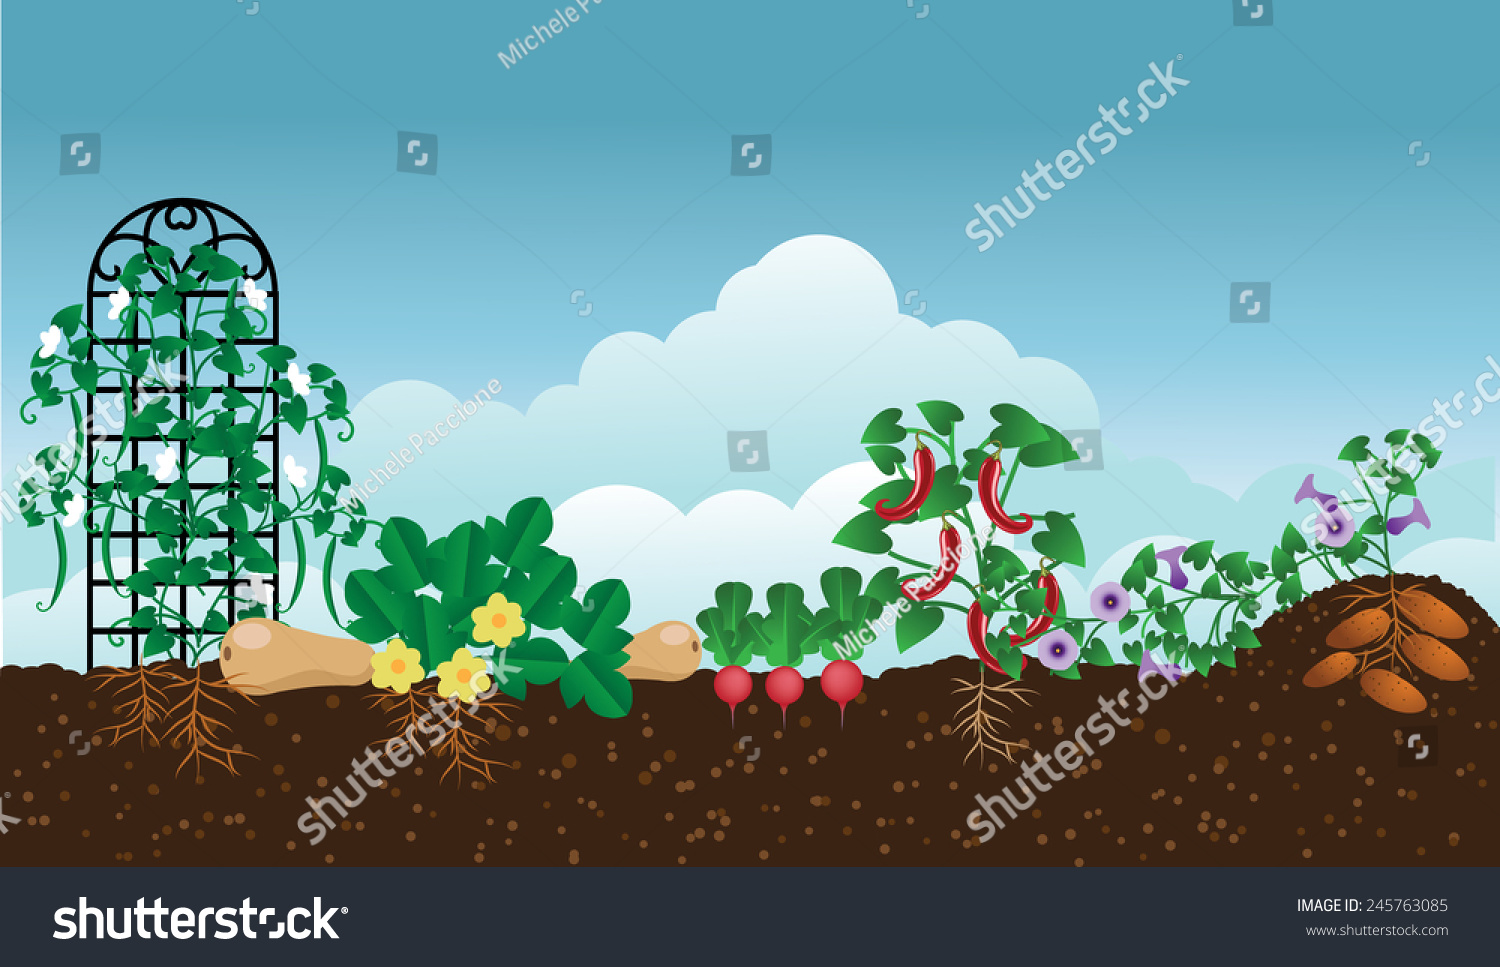 Free stock photo of garden - Vegetable Garden Background With Copy Space Eps 10 Vector Royalty Free Stock Illustration